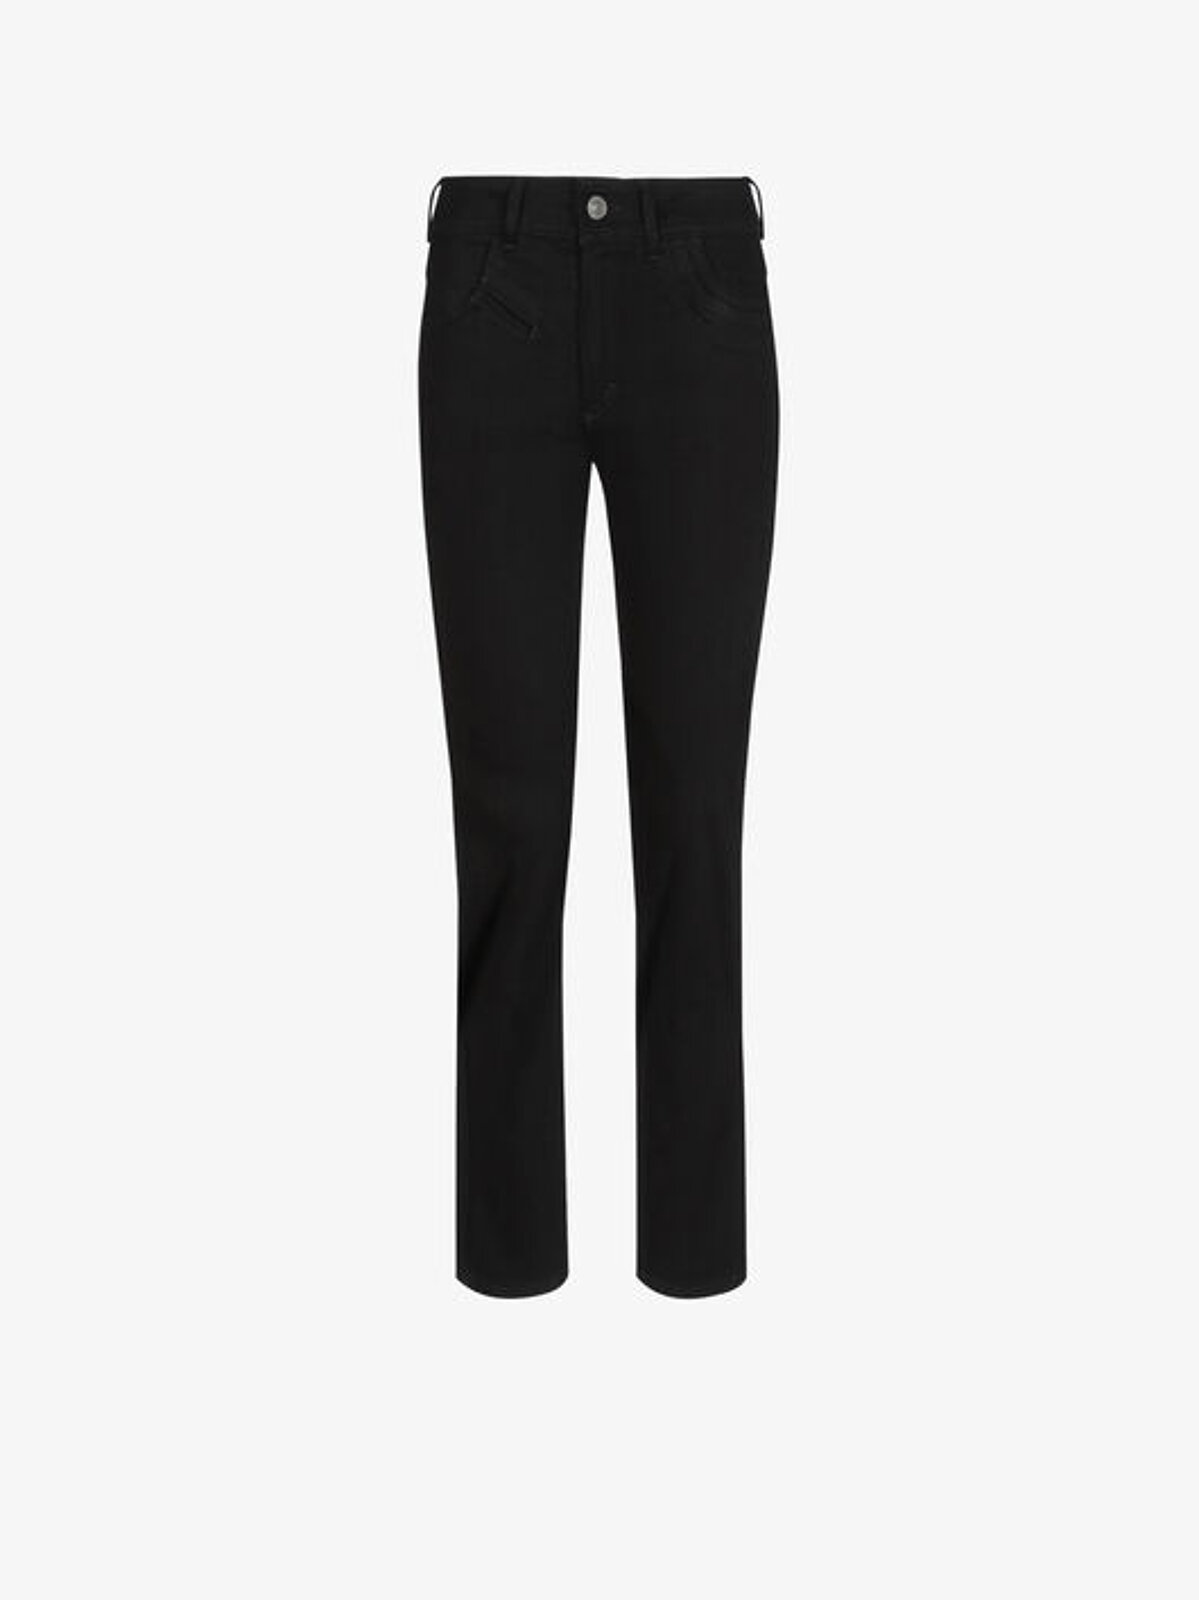 Jeans Slim Fit Multitasche - Givenchy